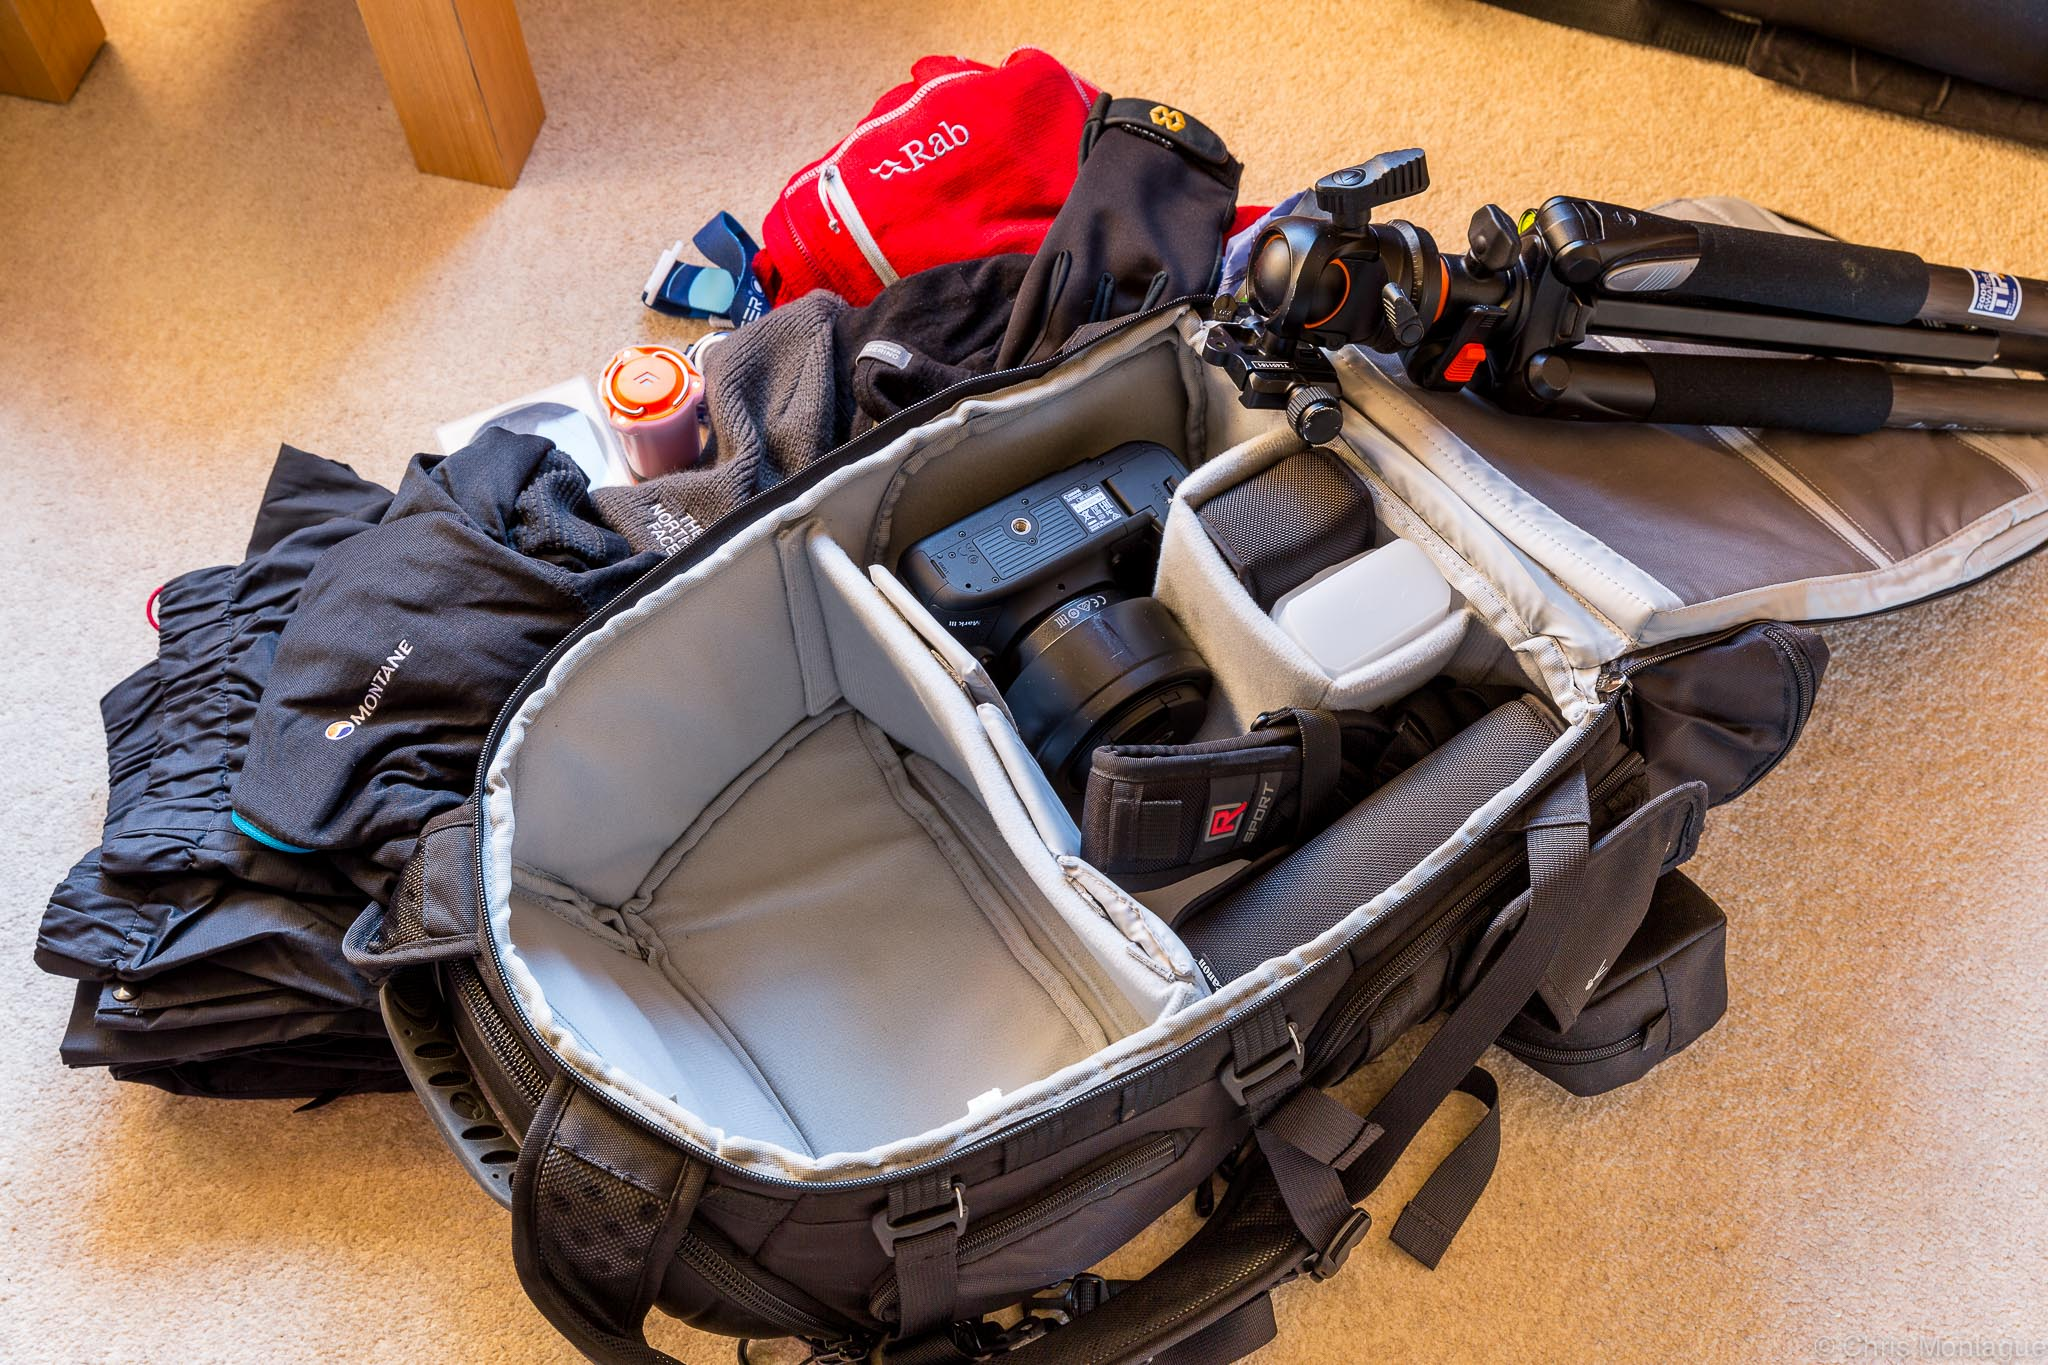 Figure 3: Unpacked, my empty re-configured for walking, ProTactic 450 AW. All the gear outside it fits comfortably in the top section, as shown in Figure 4.